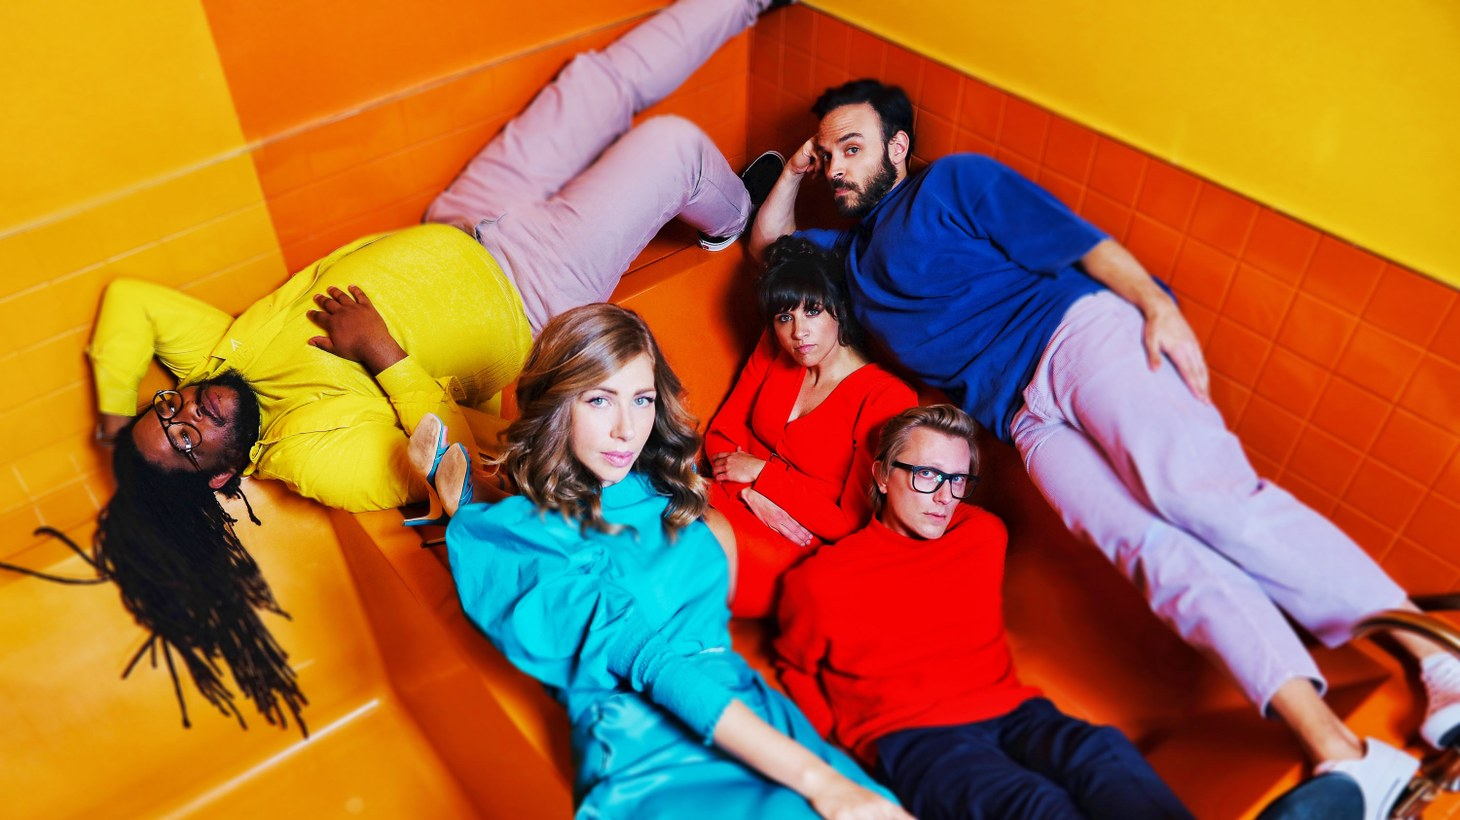 """Welcome to International Women's Day. Let's drop the needle on a track from Lake Street Dive's latest album, """"Obviously."""" The song is """"Being A Woman,"""" which packs plenty in less than three minutes!"""